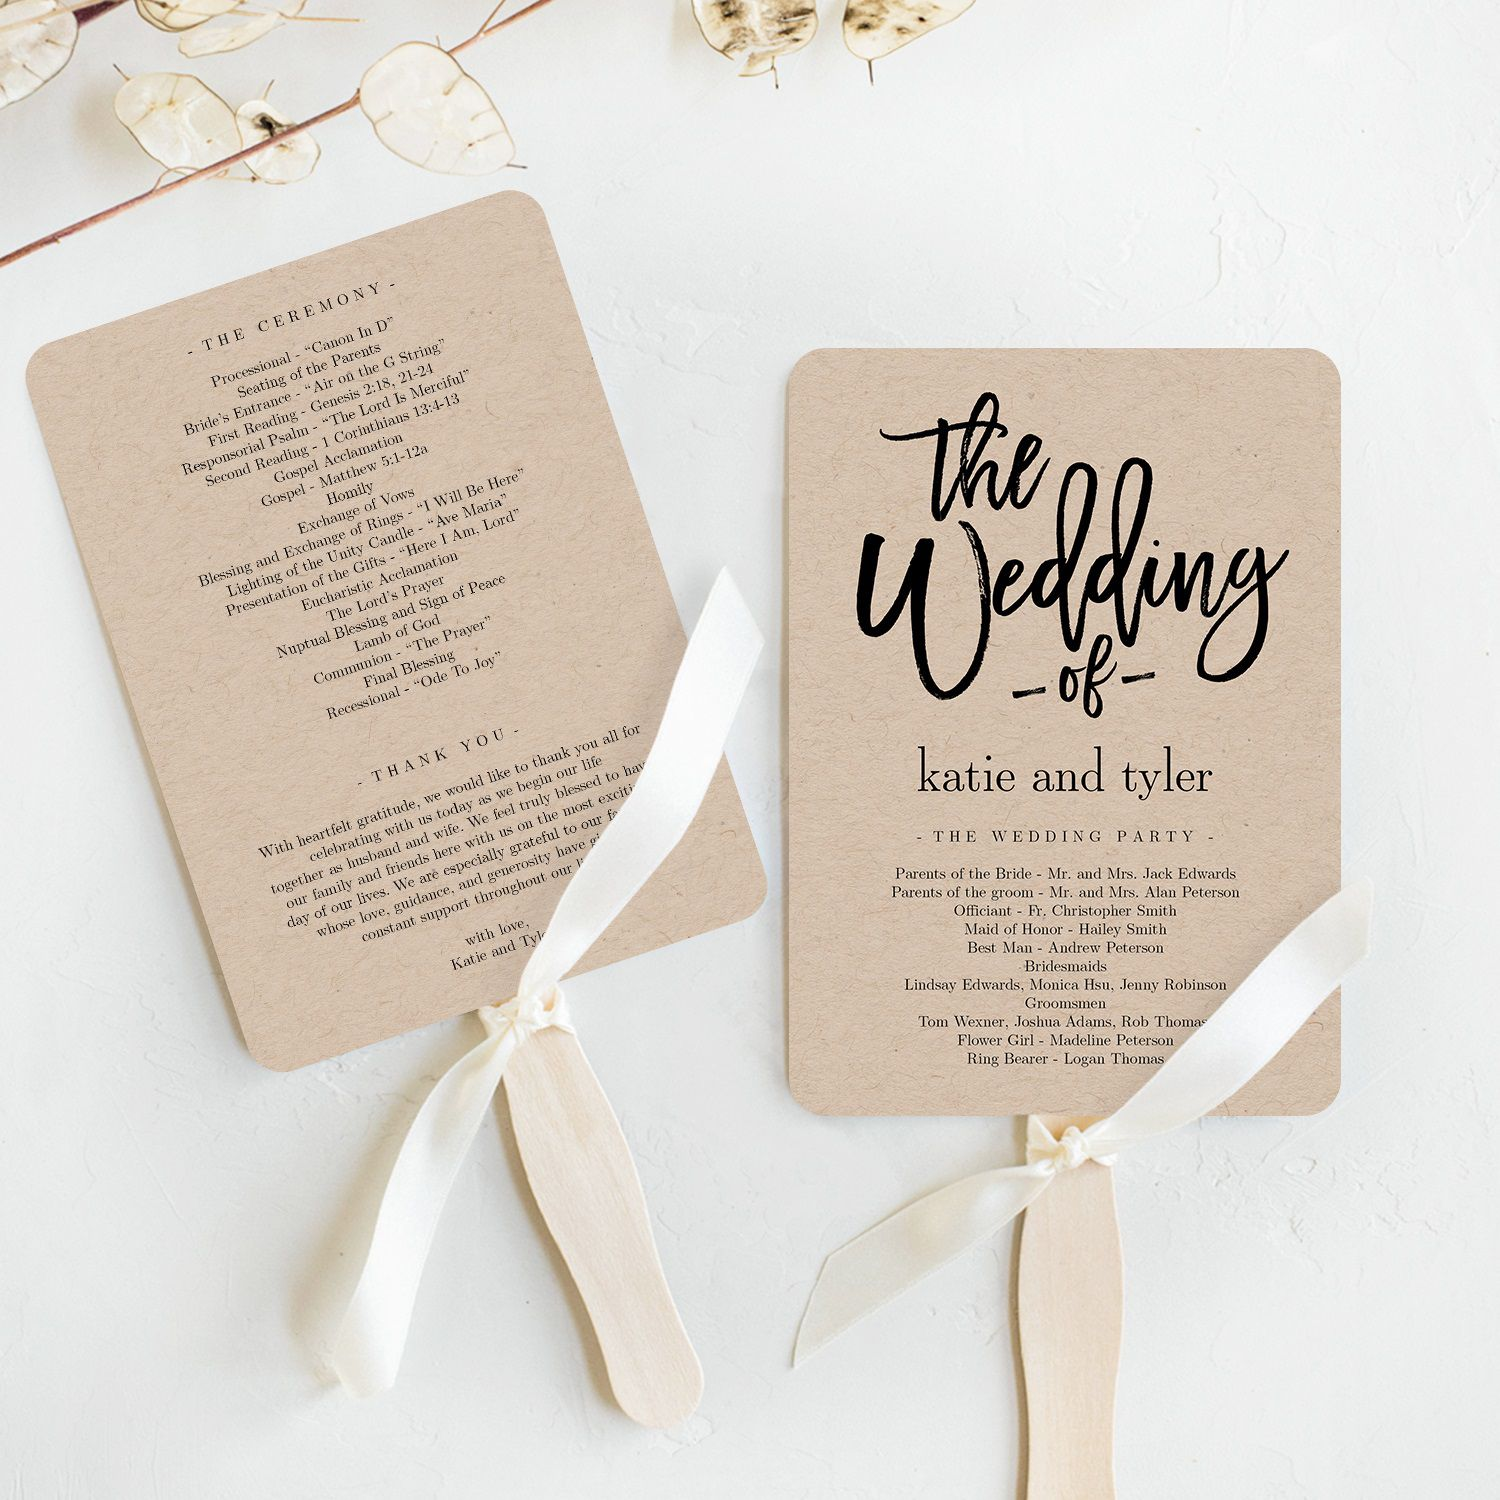 003 Astounding Wedding Program Fan Template High Def  Free Word Paddle Downloadable That Can Be PrintedFull